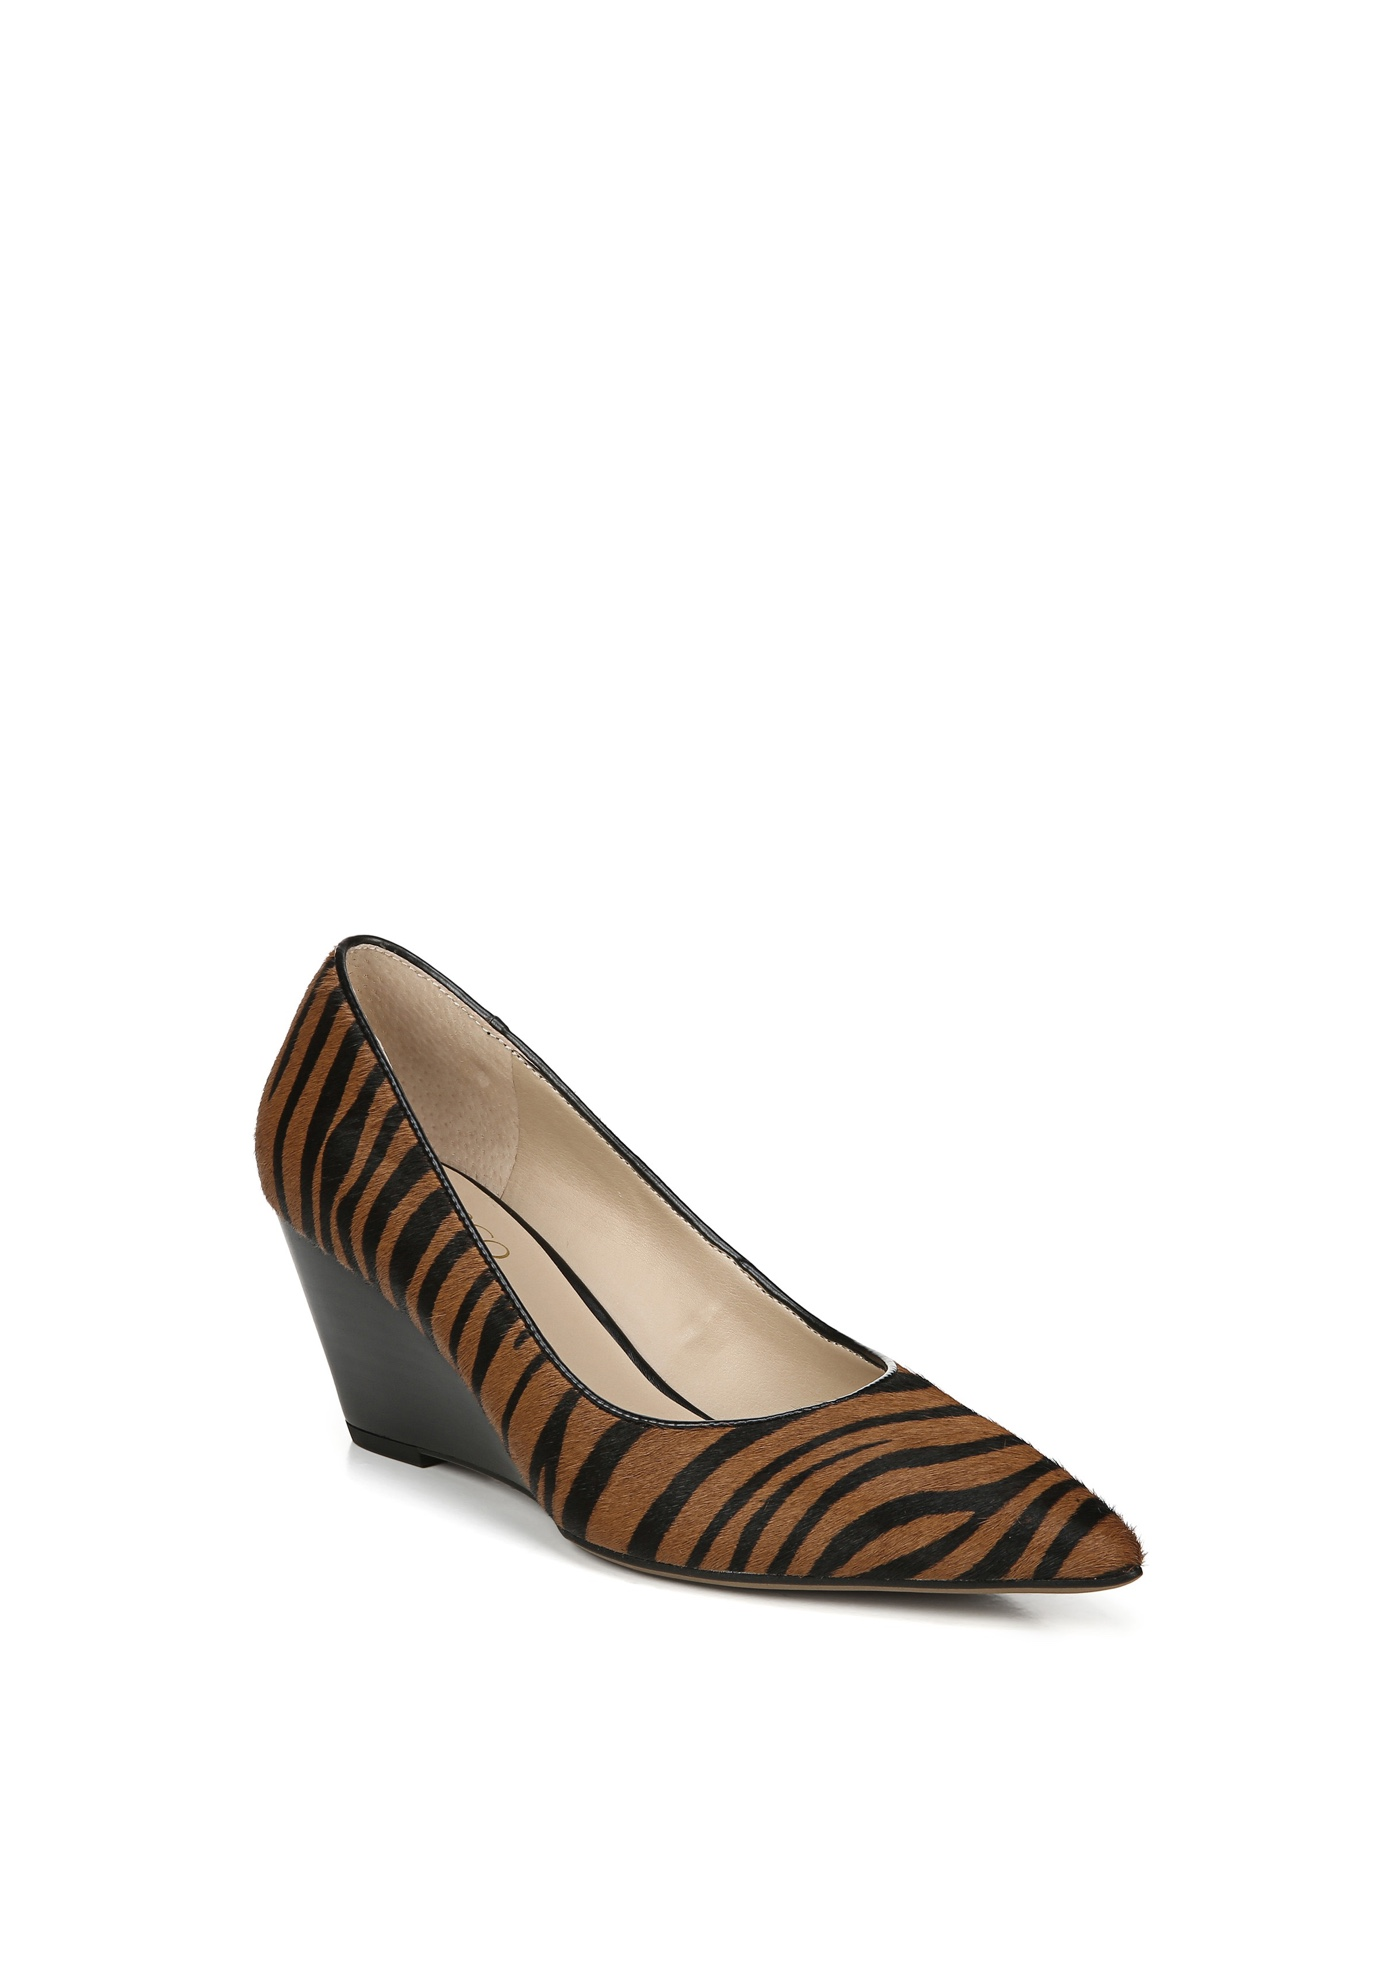 Alicia2 Pump by Franco Sarto,